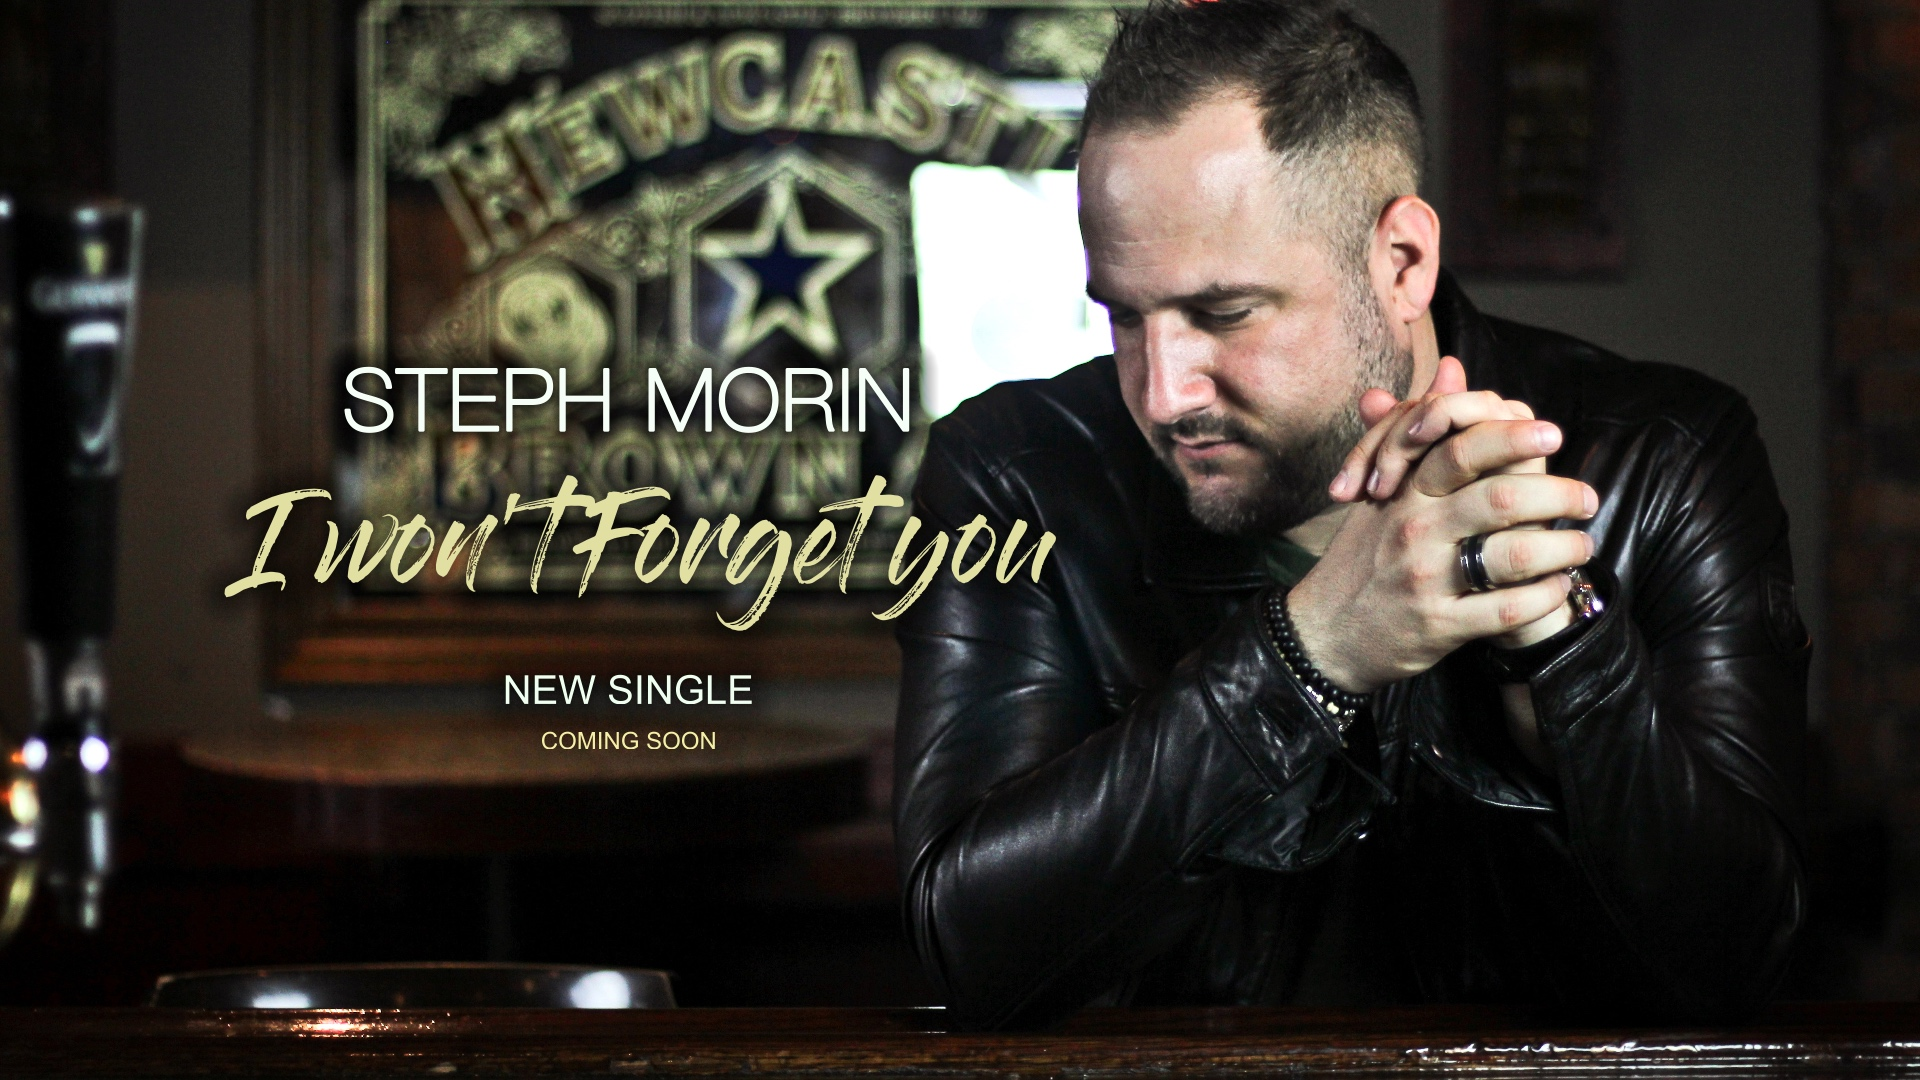 Steph Morin I won't Forget You single coming soon